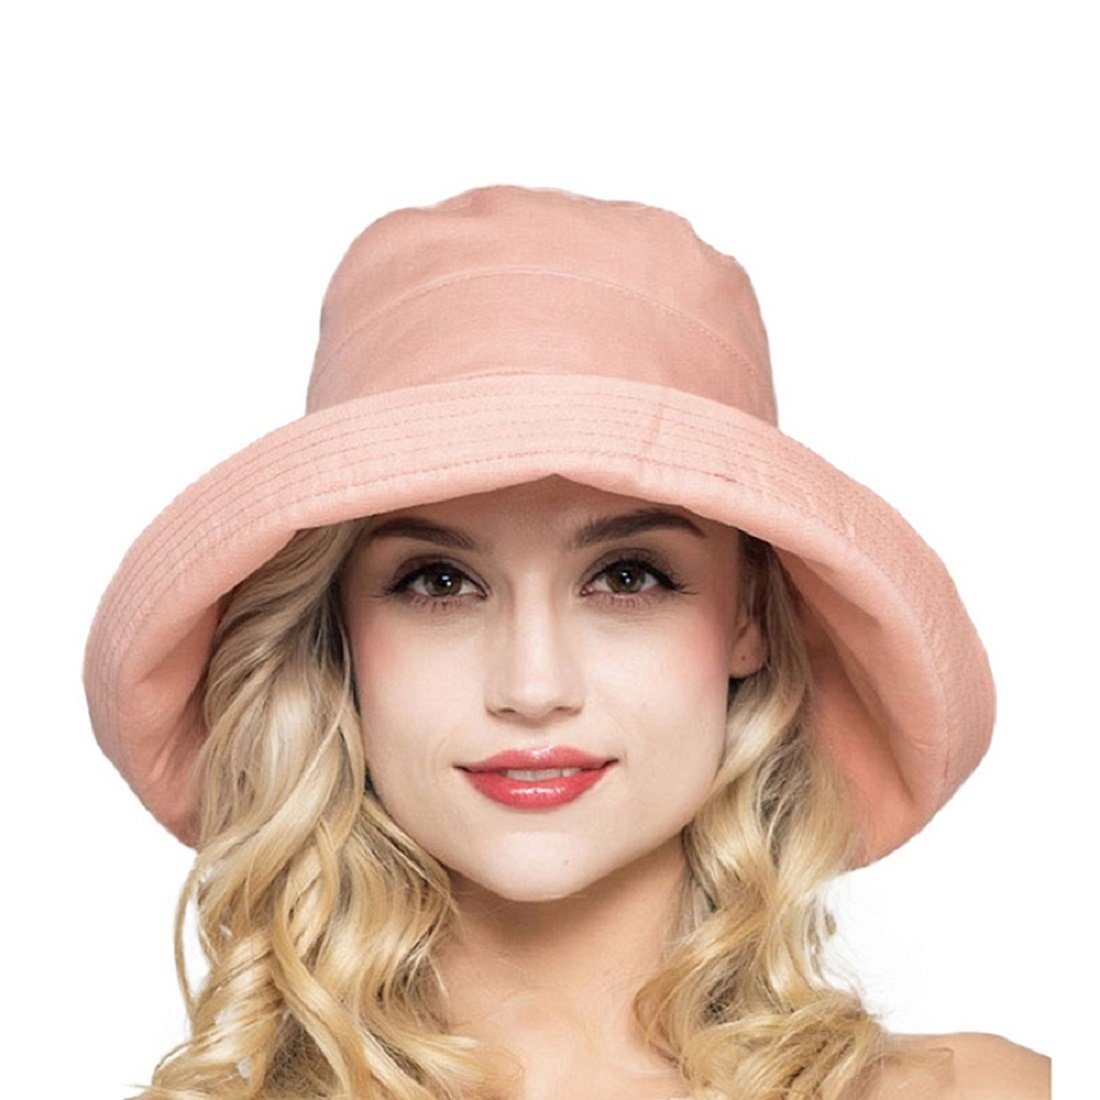 Lmoway Women Foldable Wide Brim Fold Up Cotton Outdoor Sun Fishing Hat UPF50+ with Bow Coral